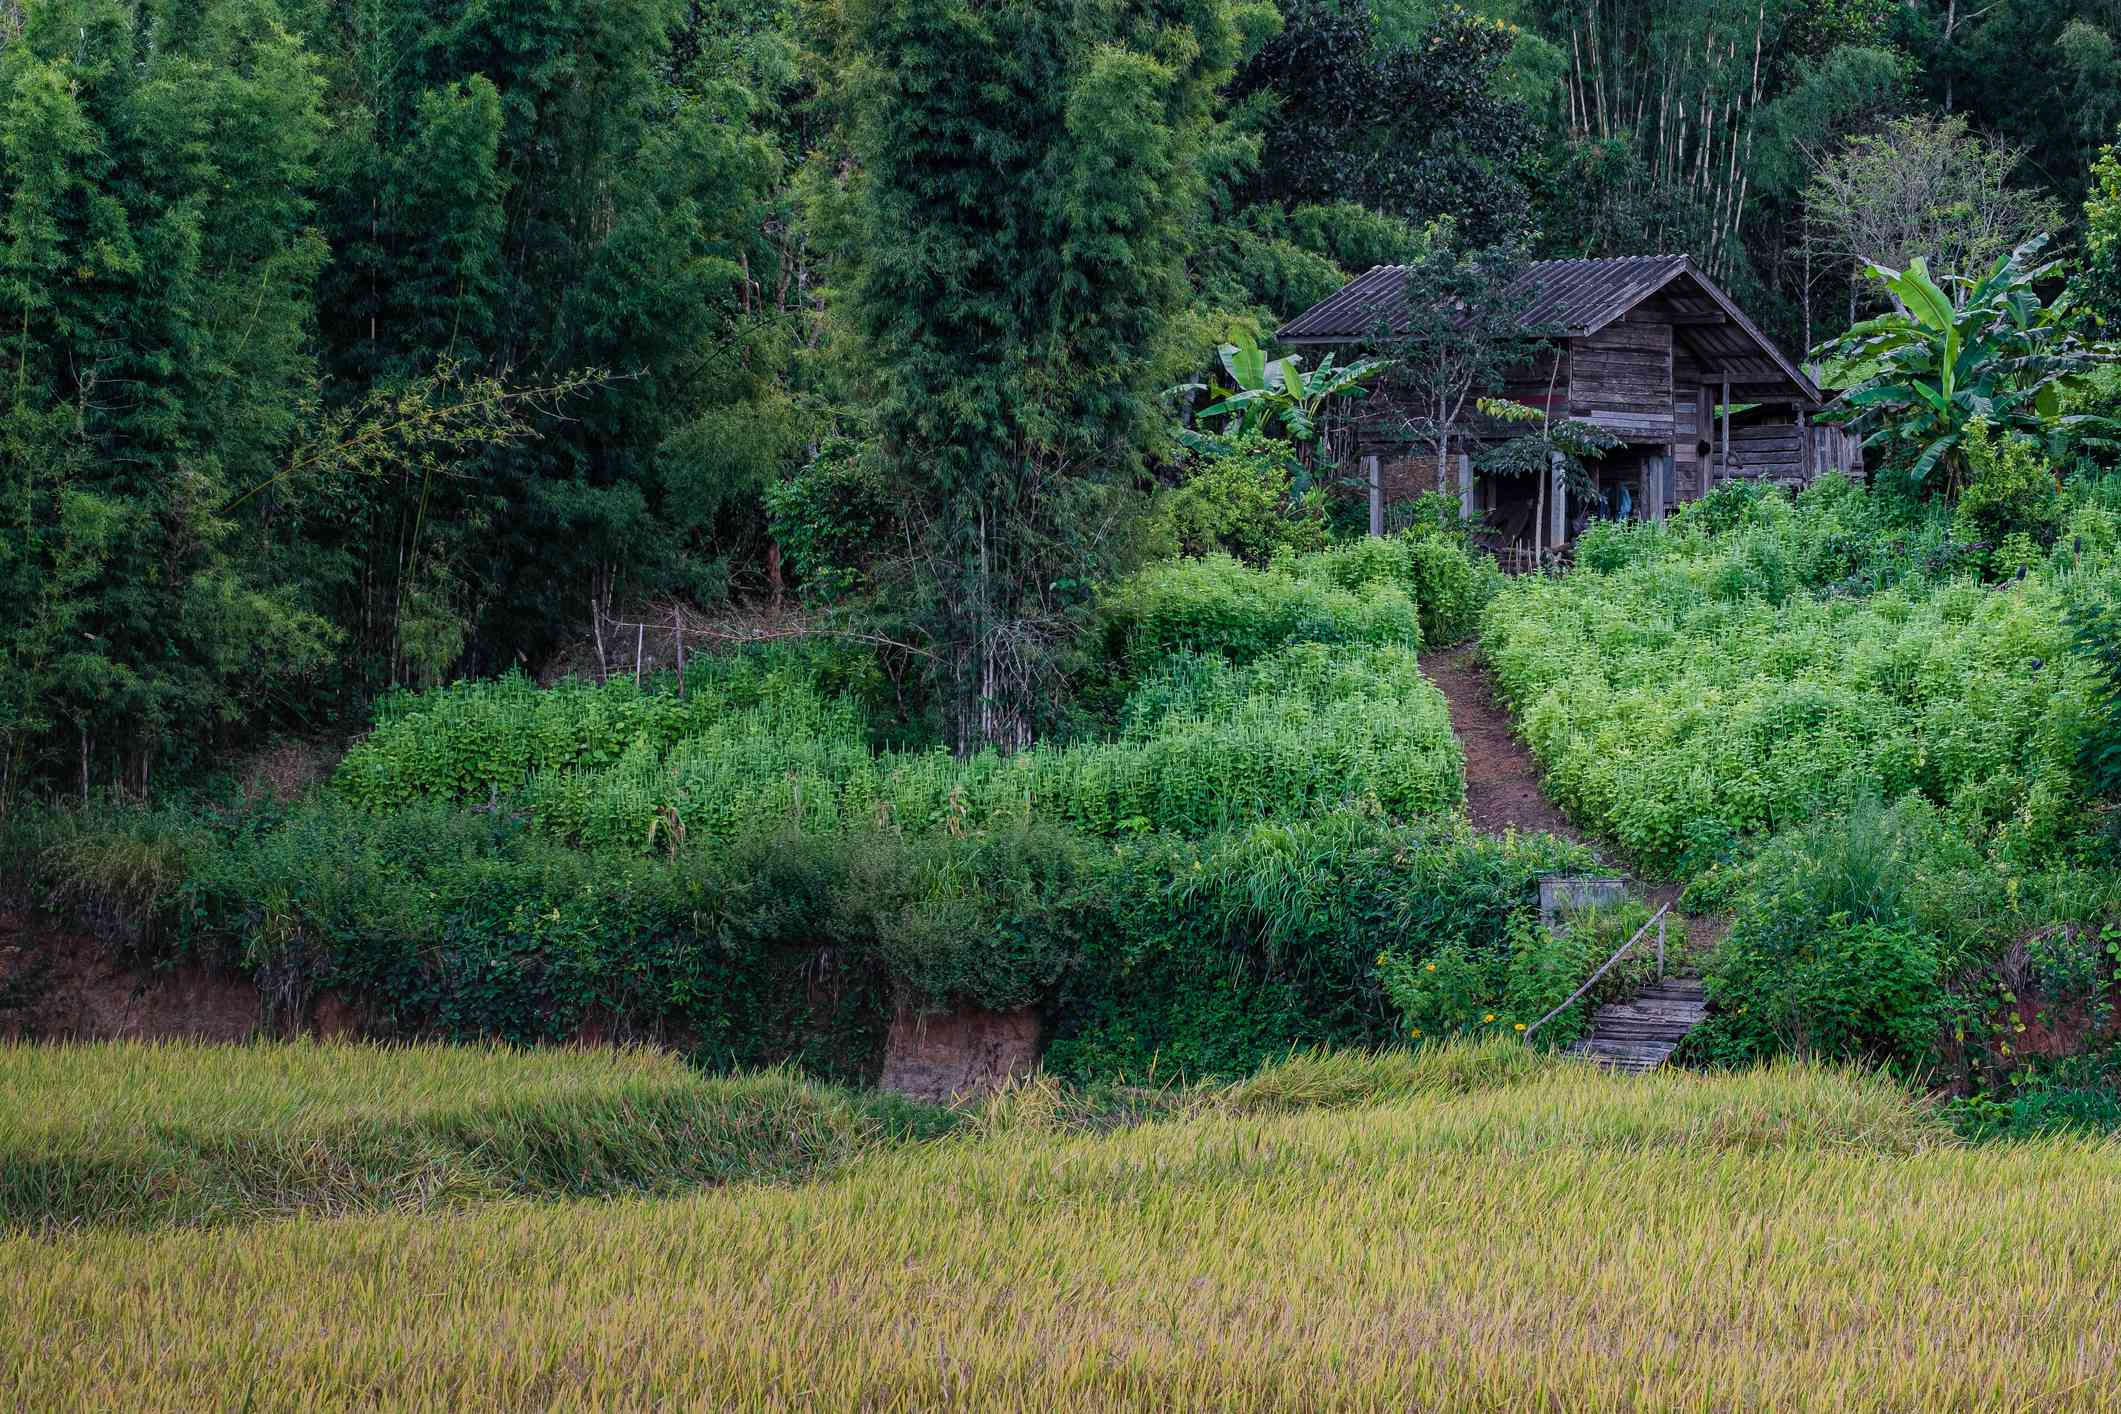 Vegetable garden with small house in rural Chiangmai, Thailand.